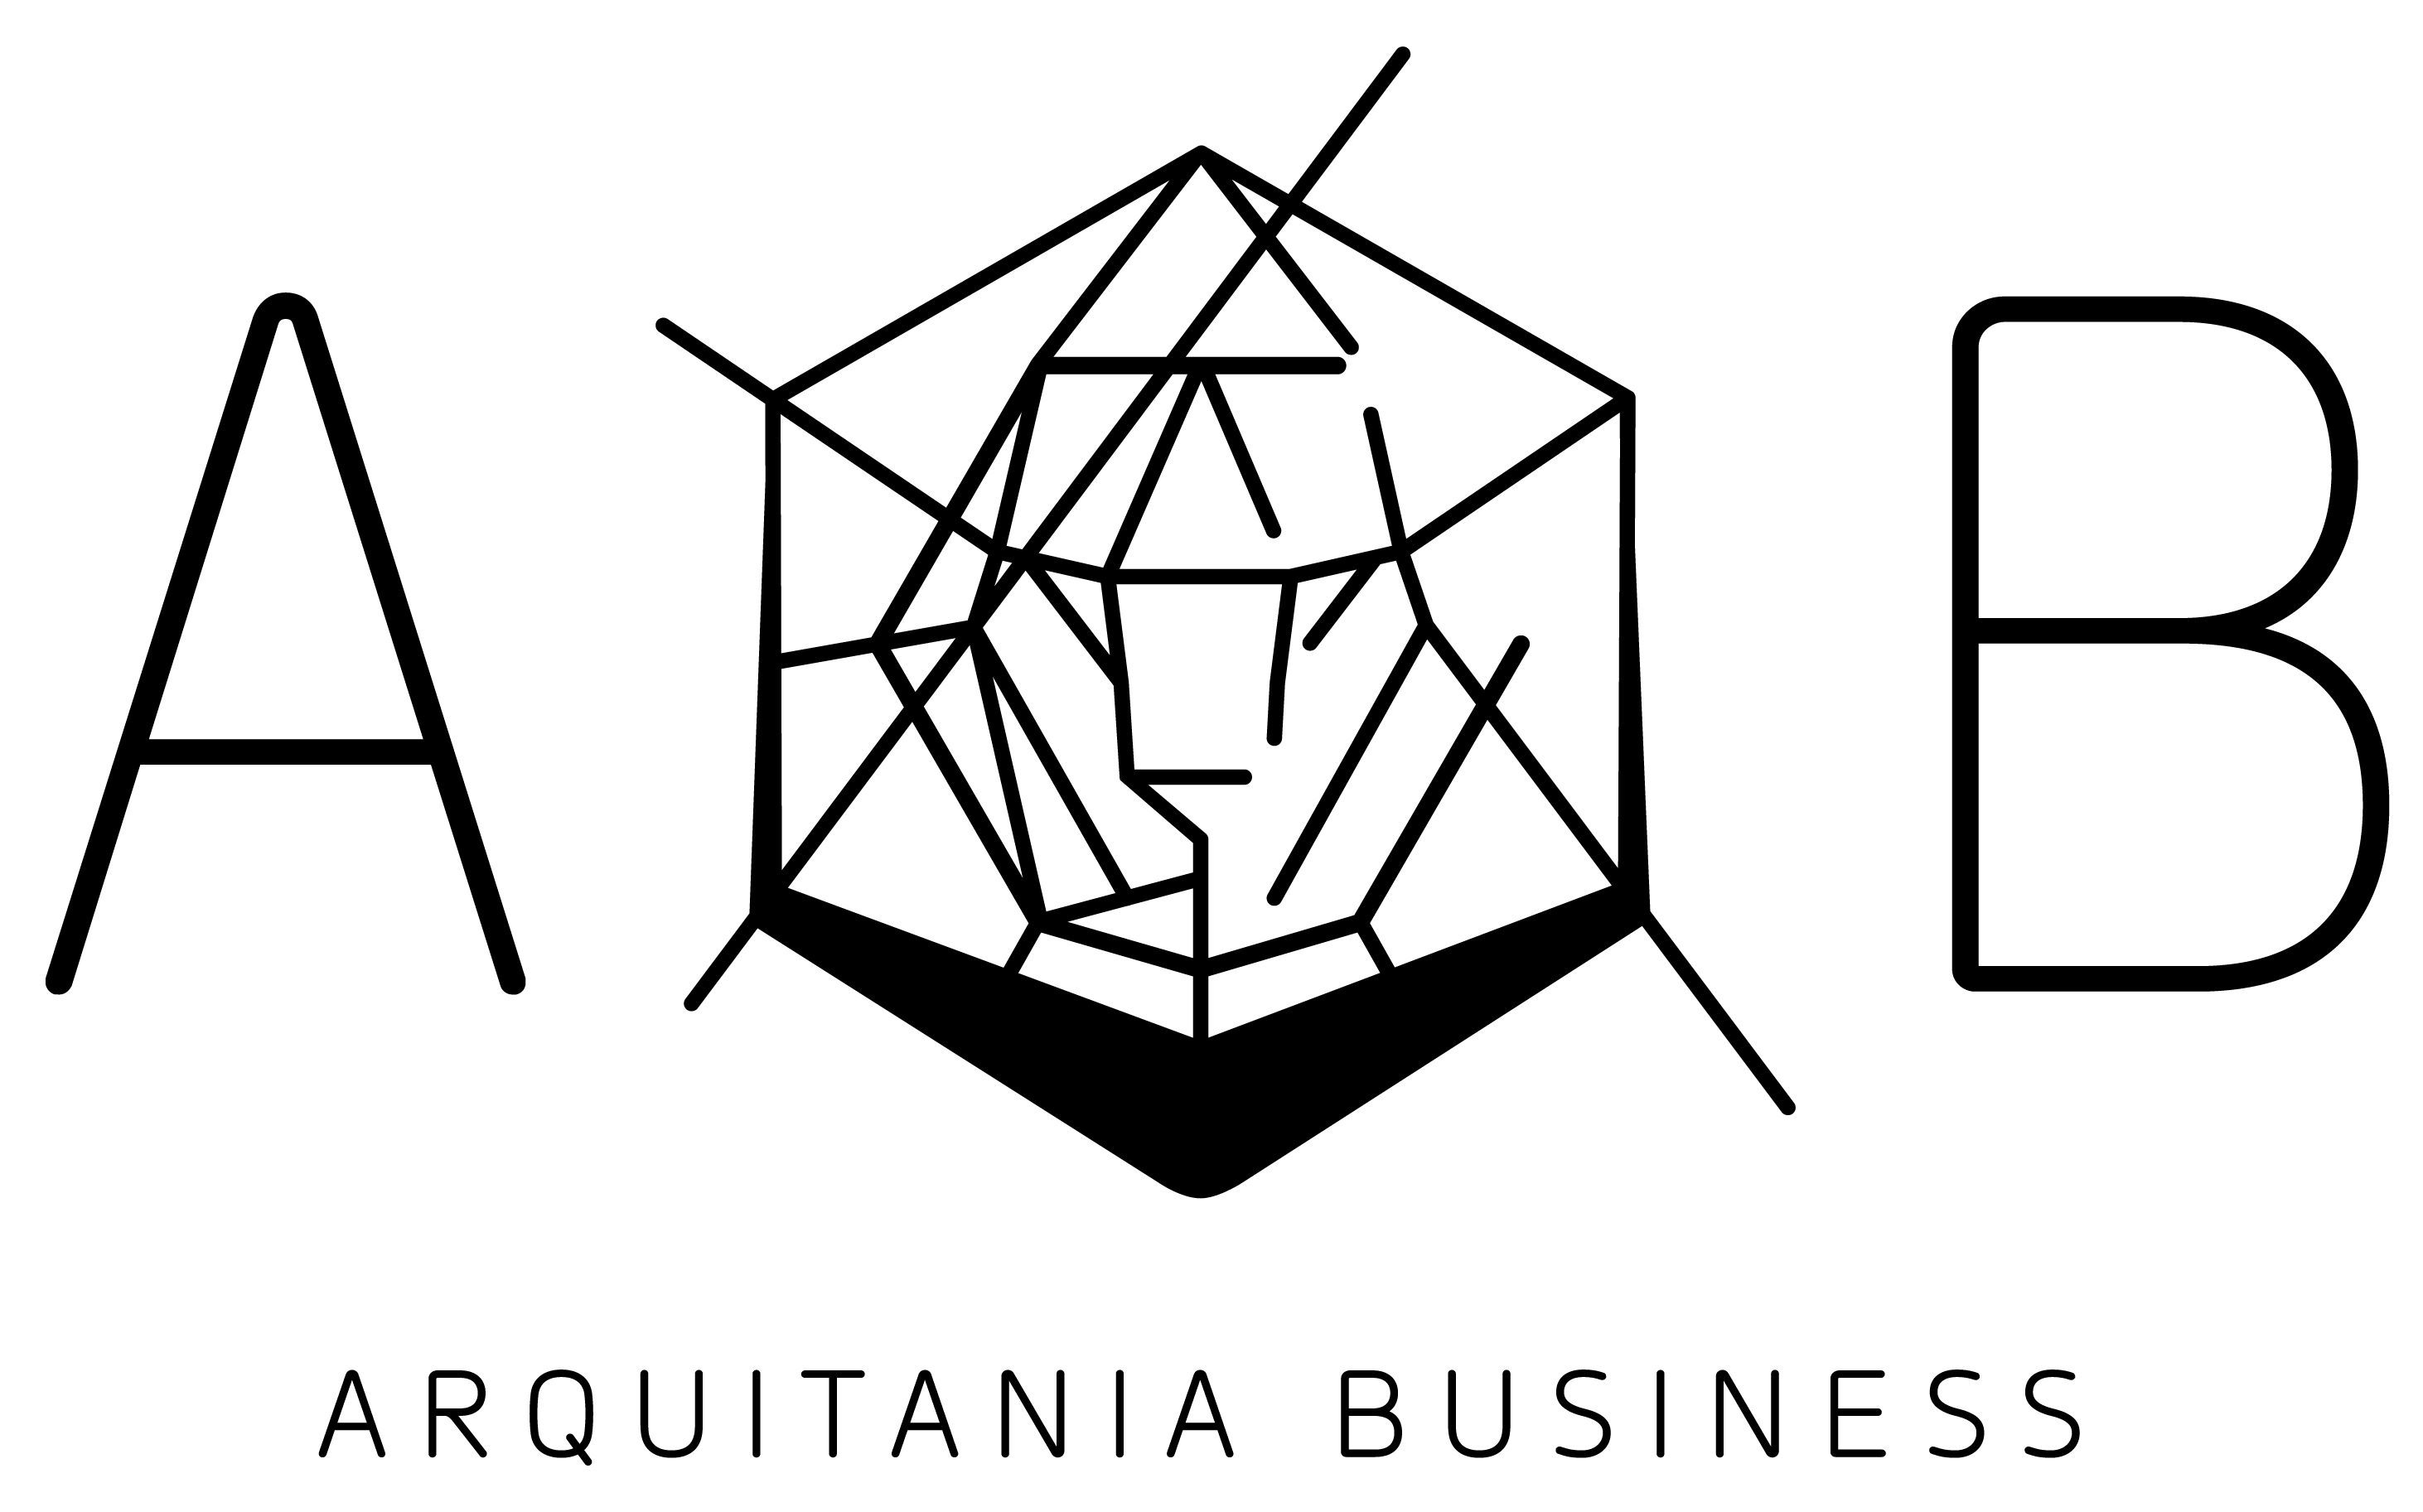 Arquitania Business